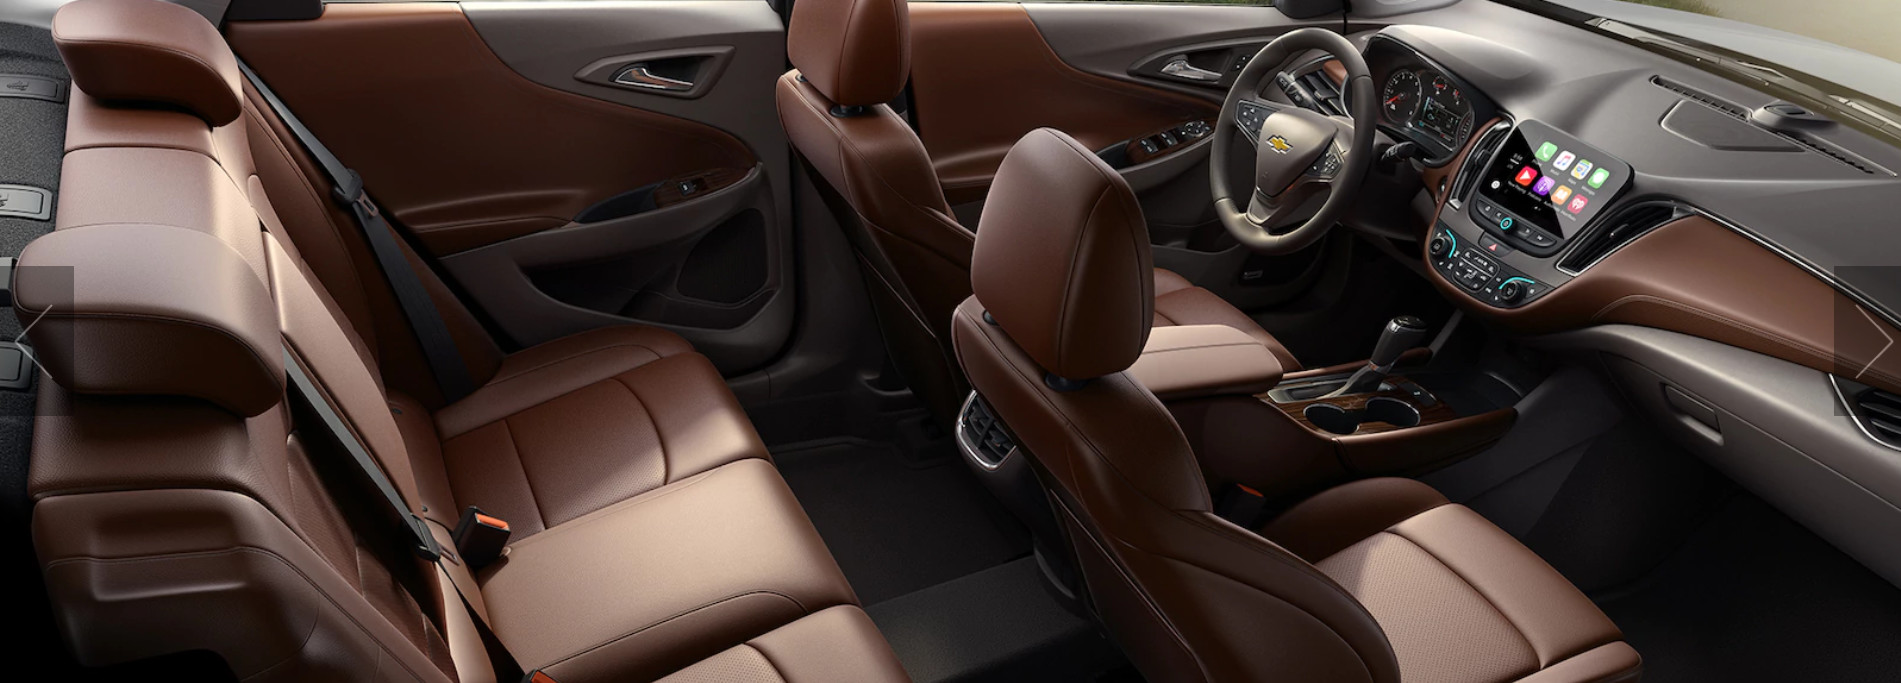 Luxurious Interior of the 2018 Malibu